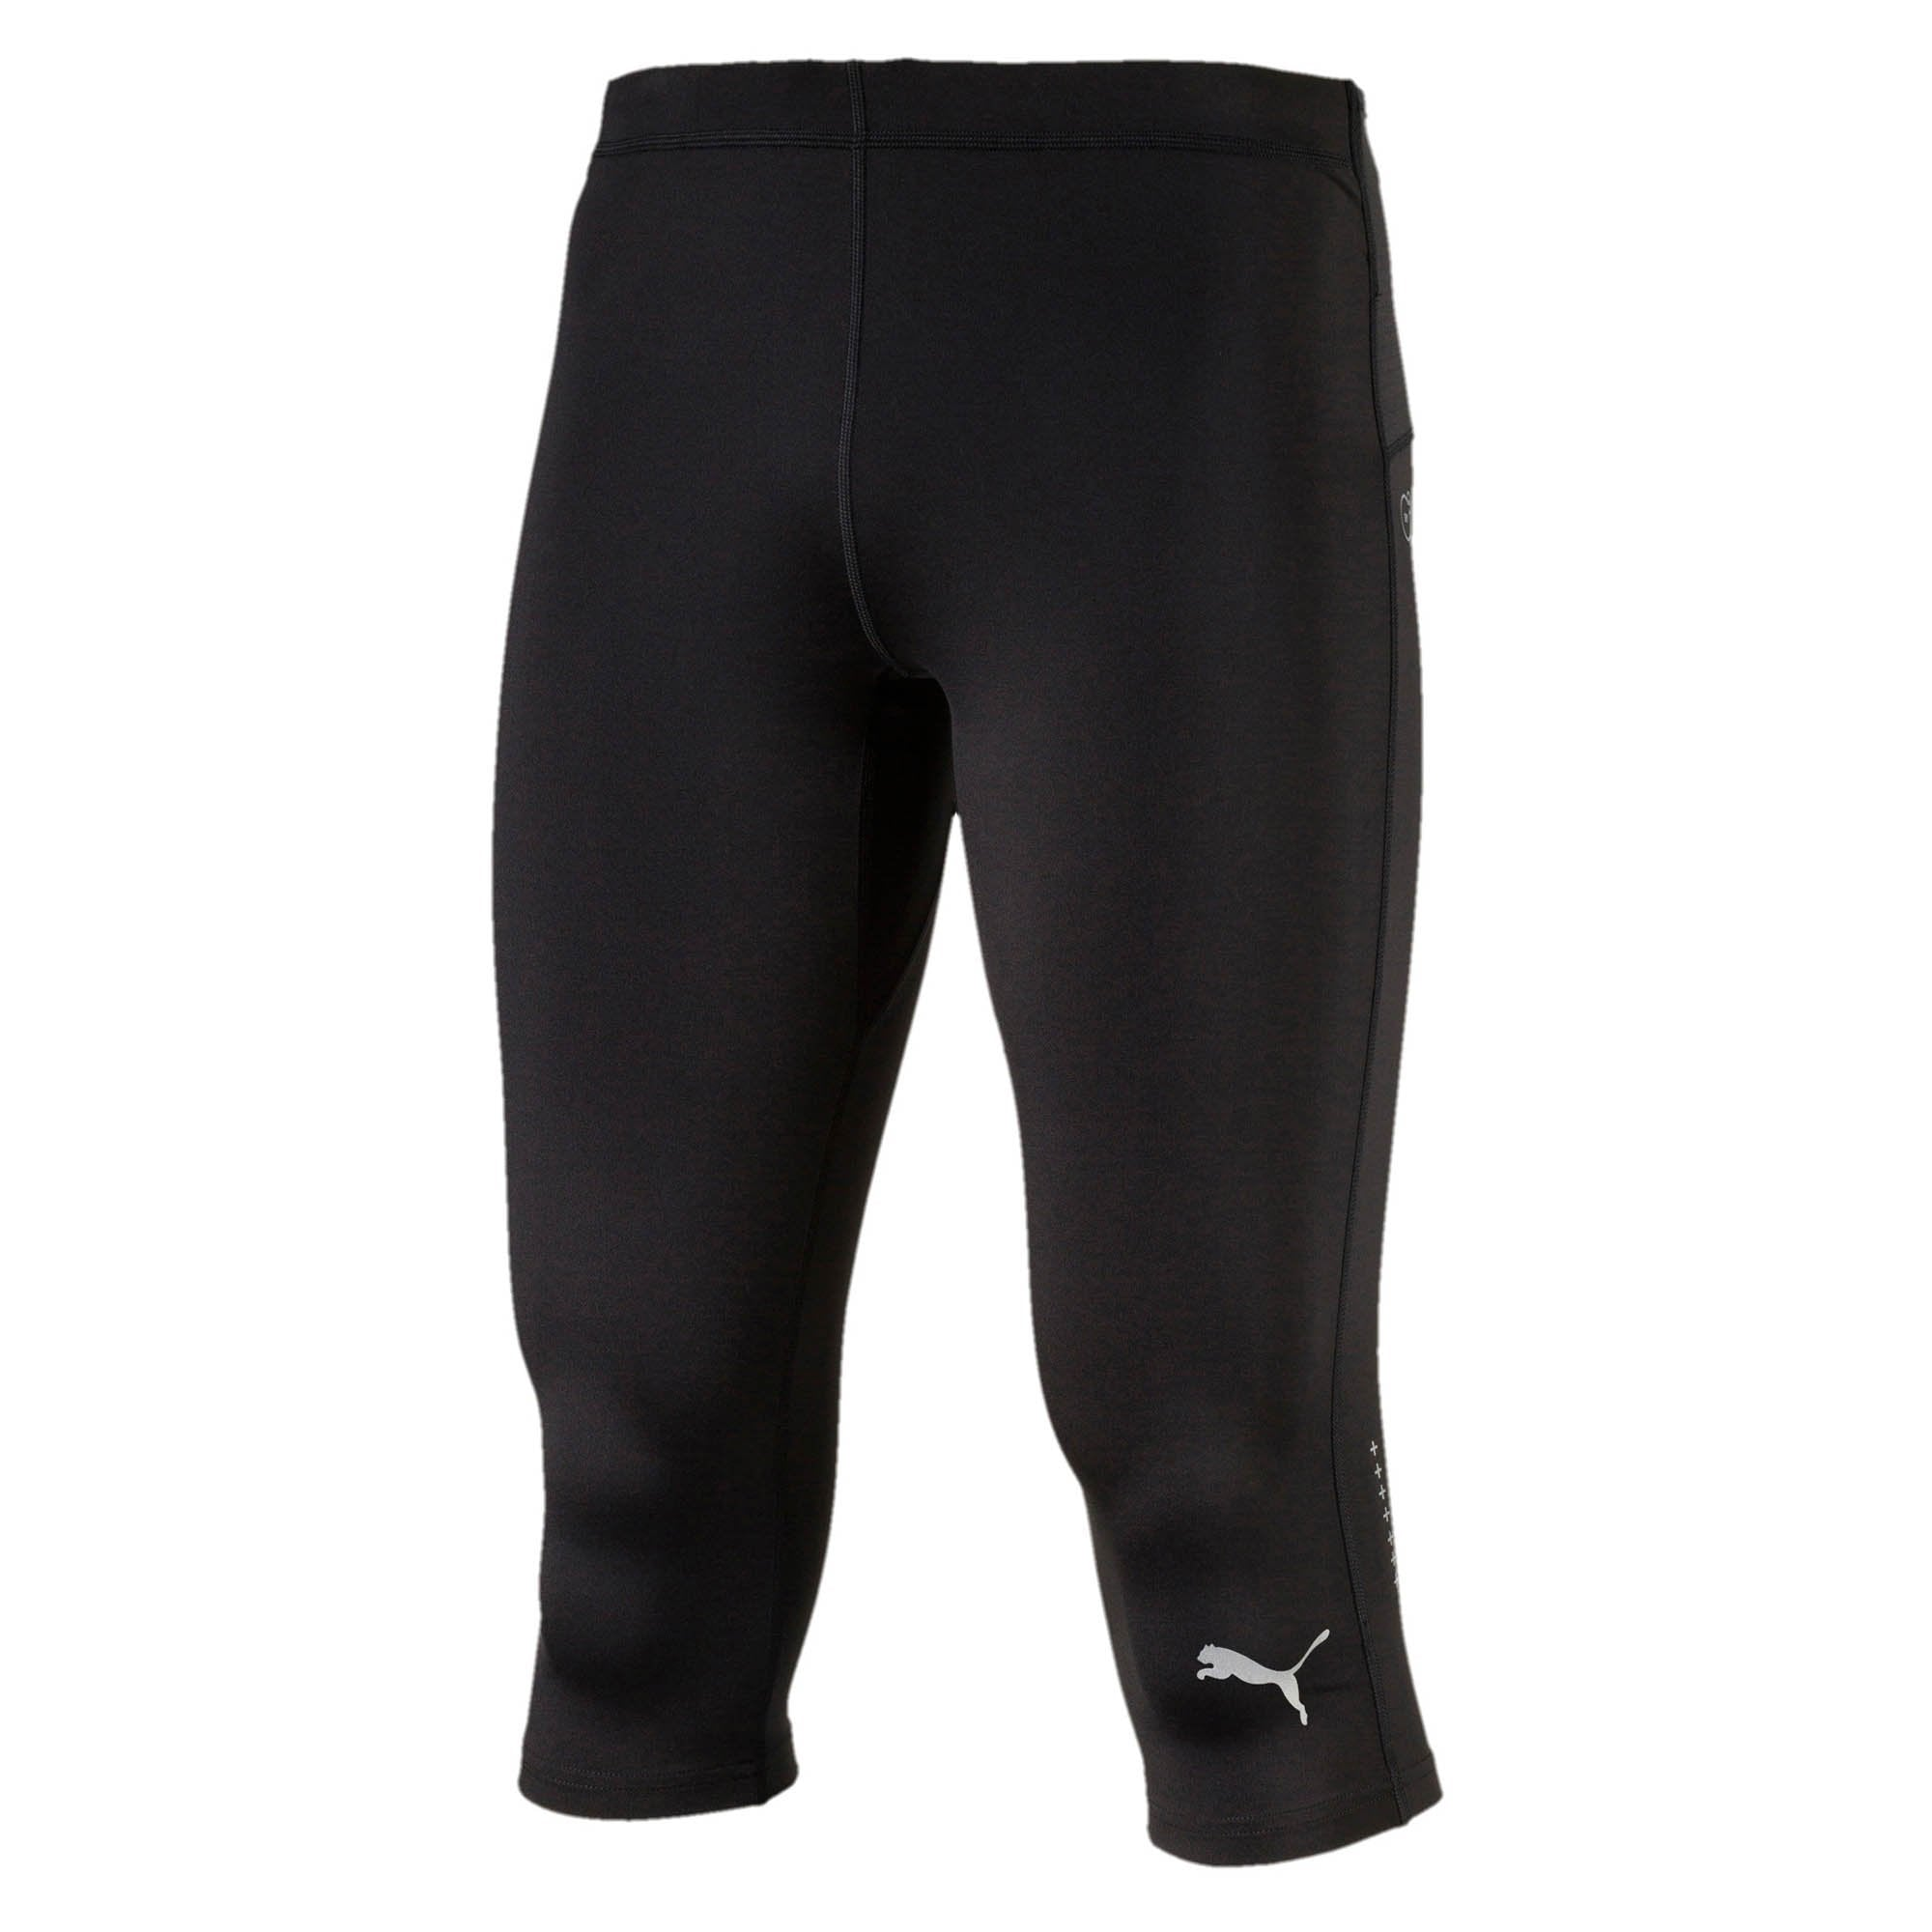 020e3421ded Buy Puma Men Ignite 3/4 Running Leggings Online in Singapore | Royal  Sporting House